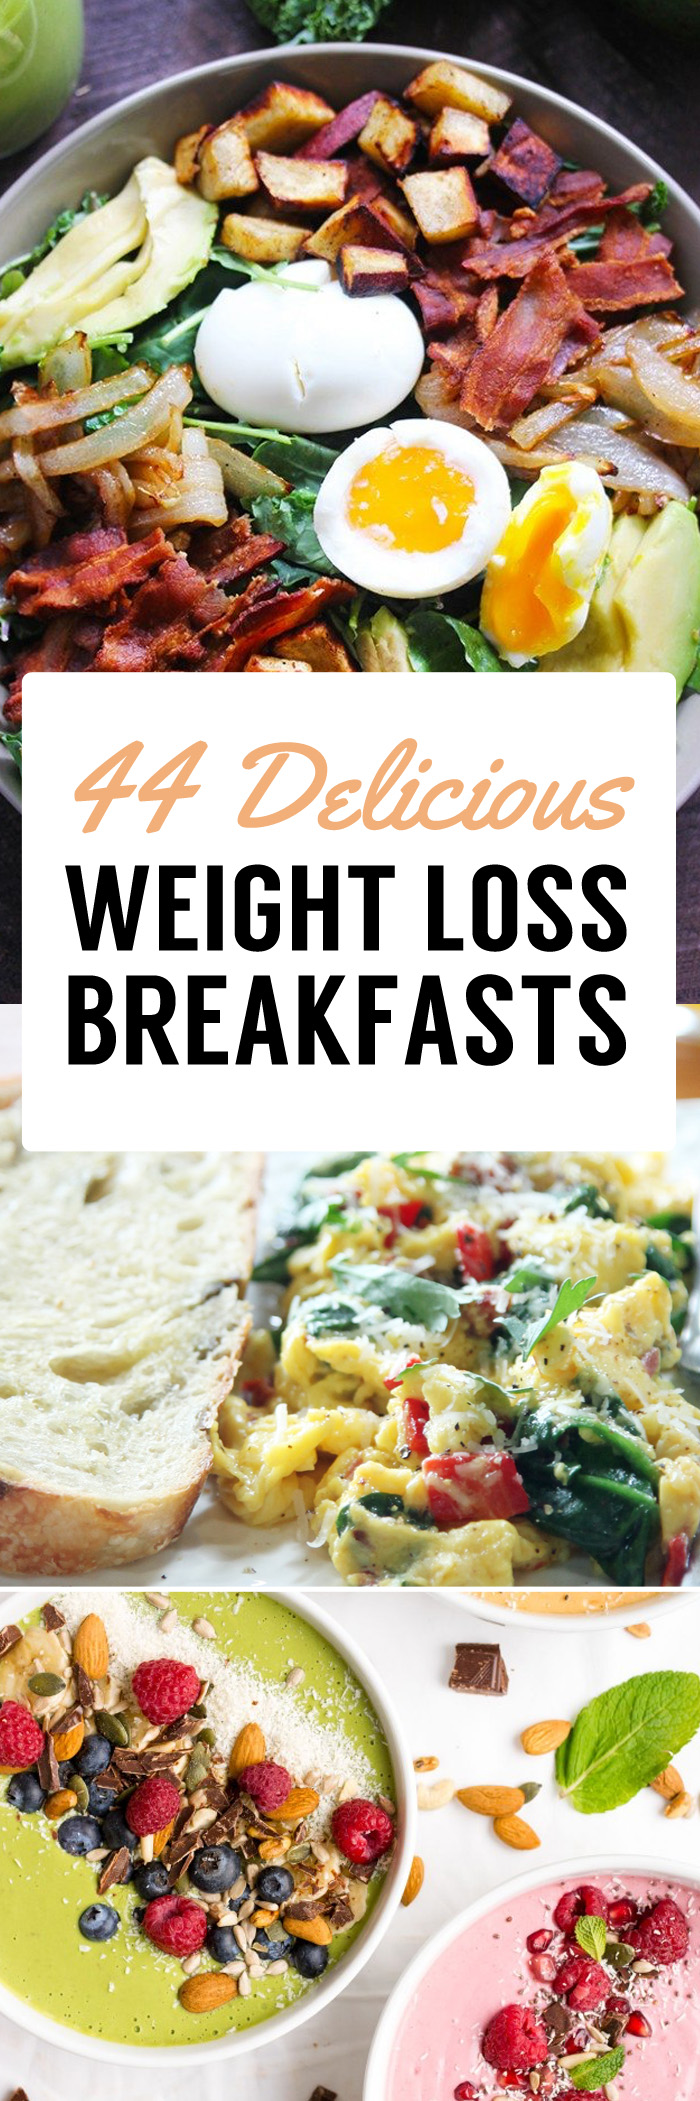 mens health weight loss breakfast meals